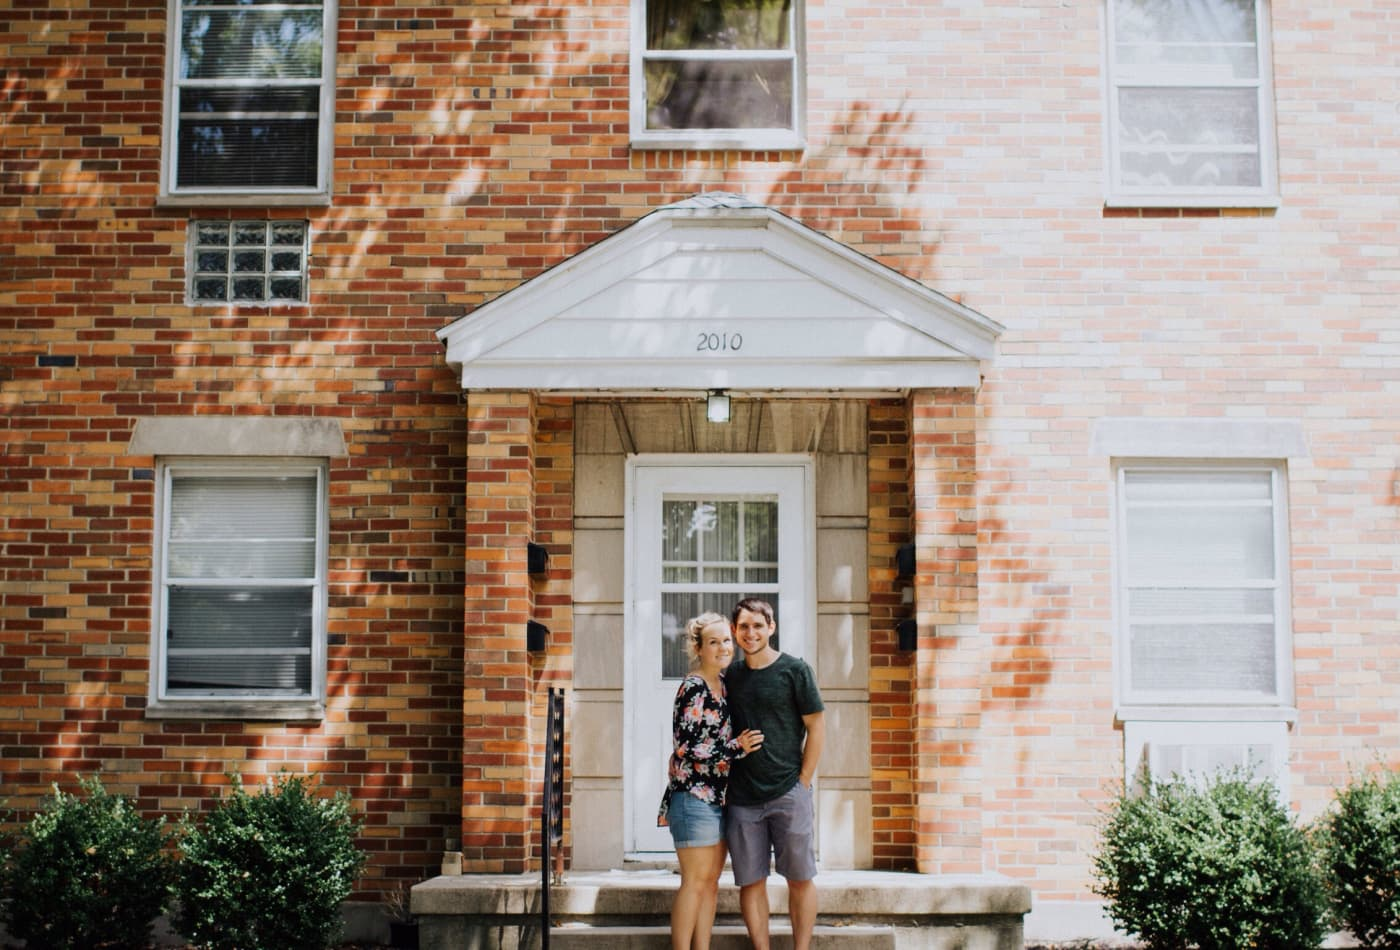 550 Credit Score Home Loan >> The Credit Score You Need To Take Out A Mortgage